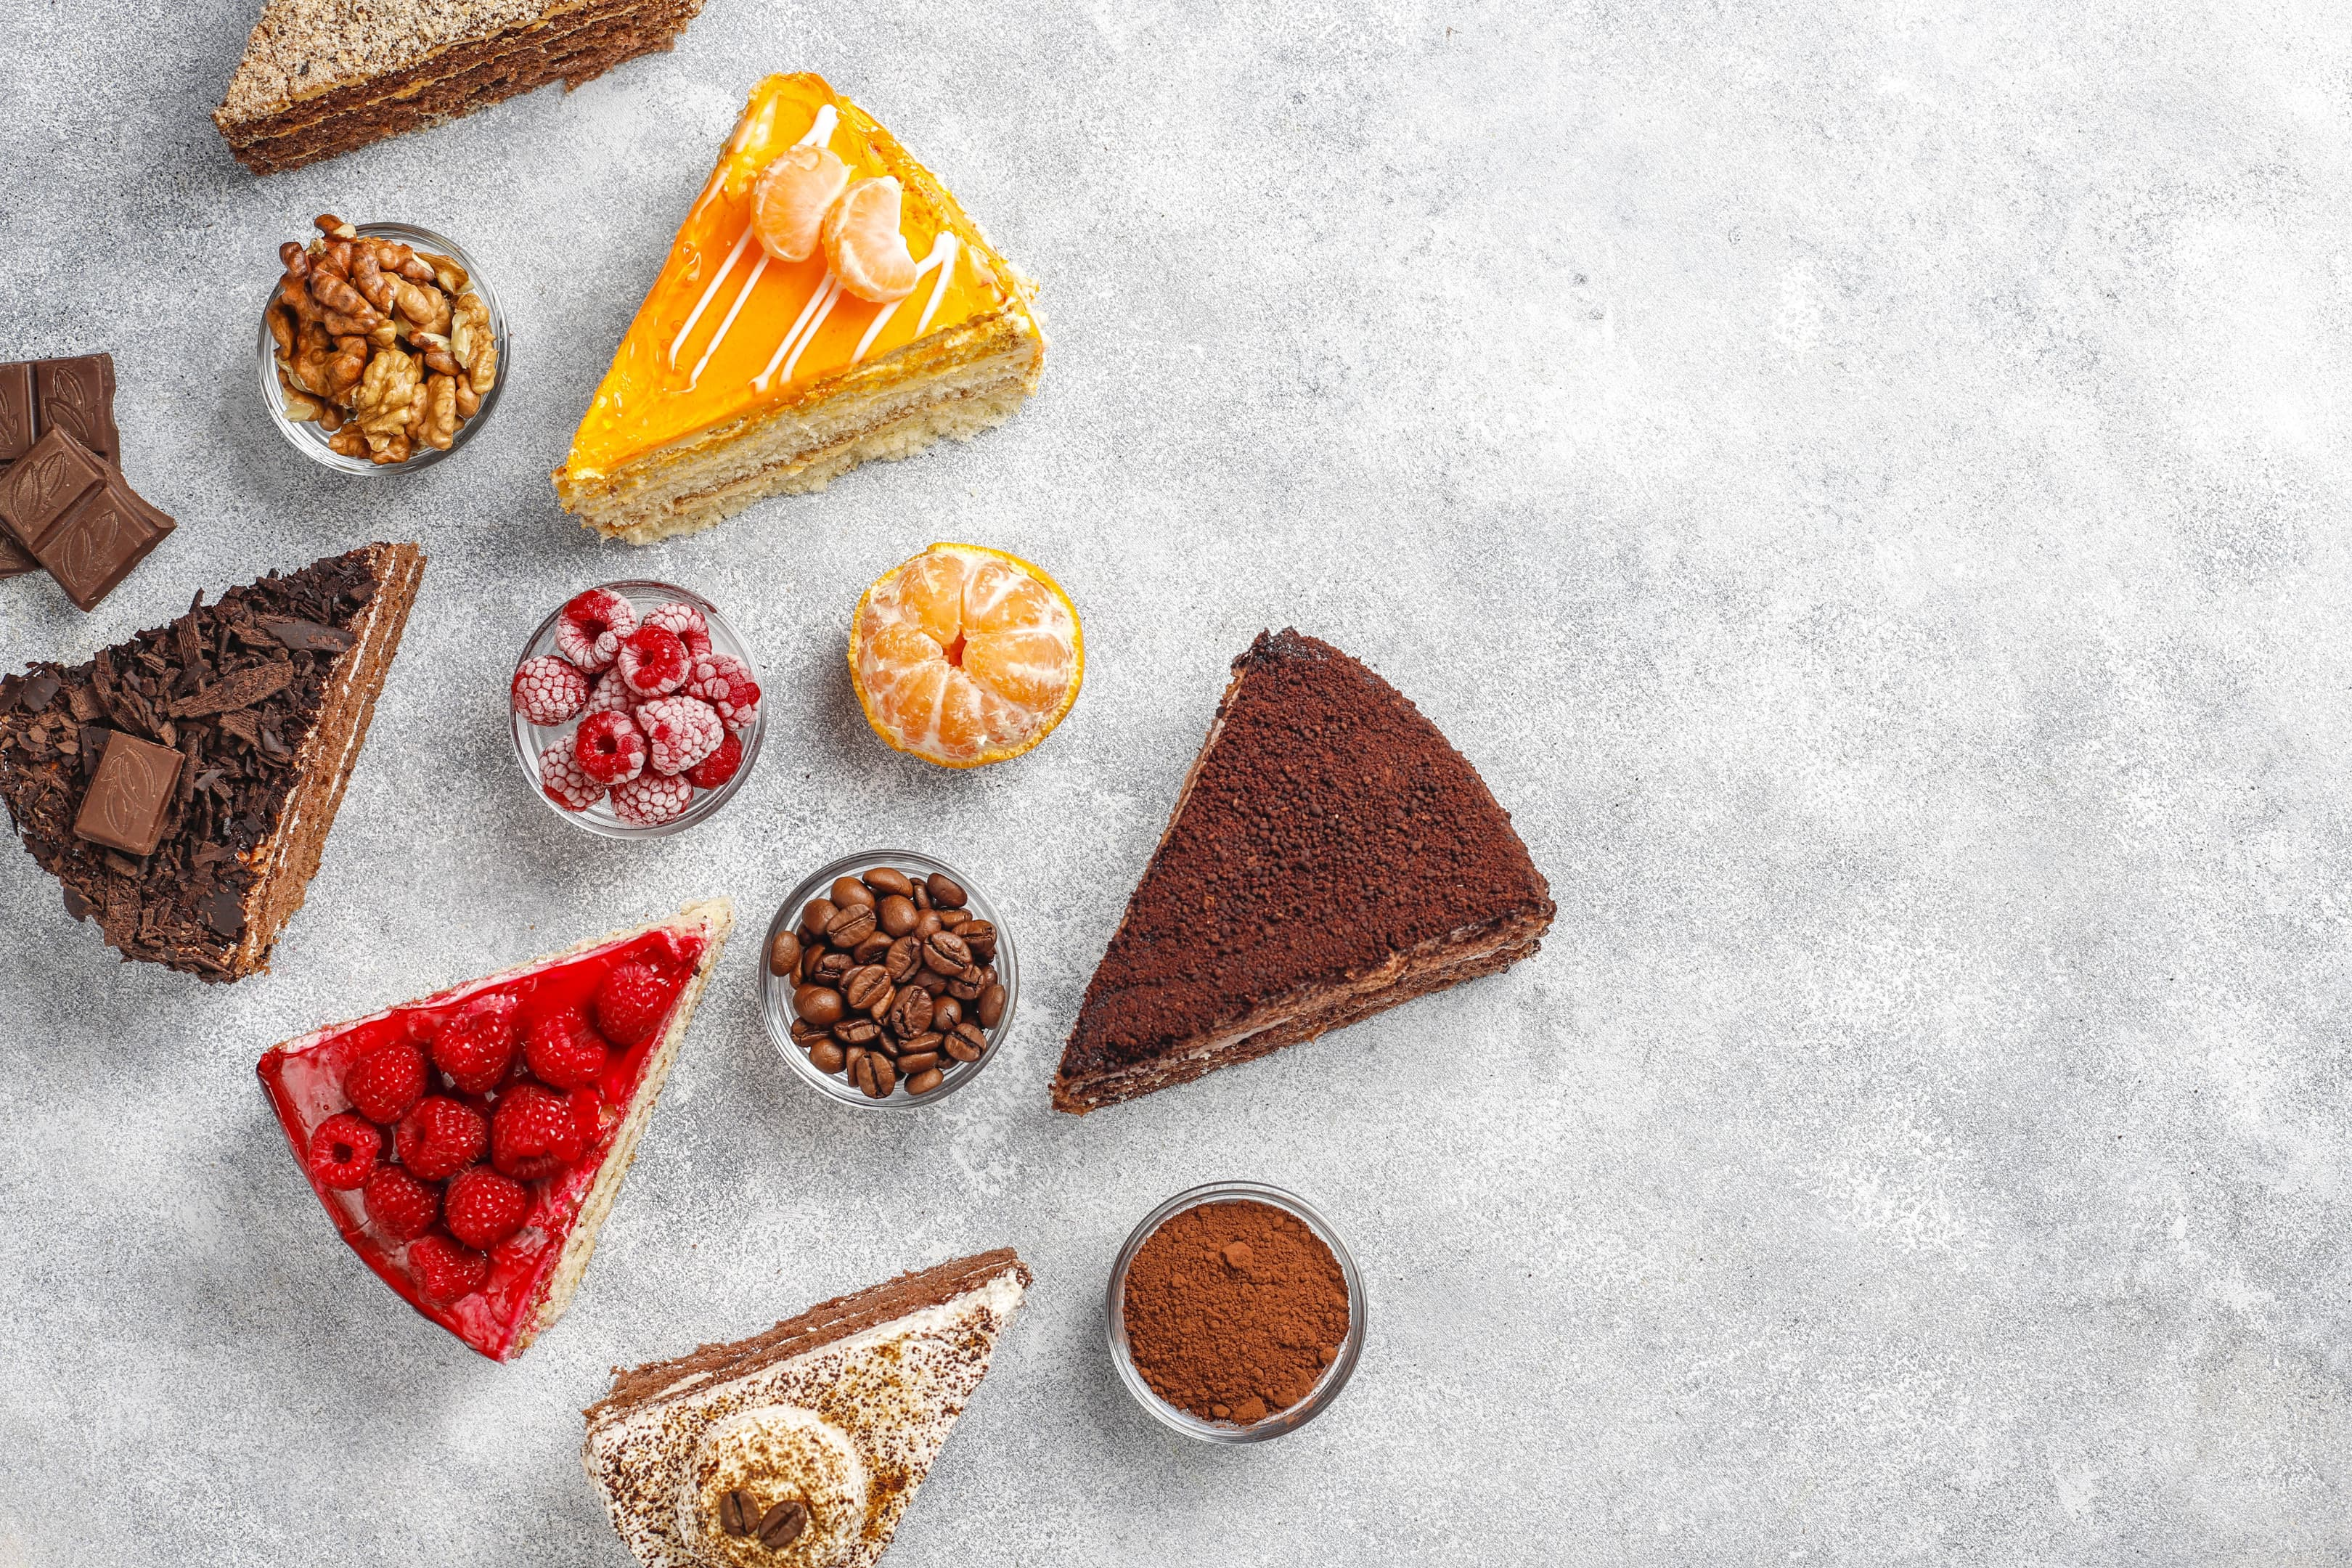 Sugary foods — assortment of cake pieces